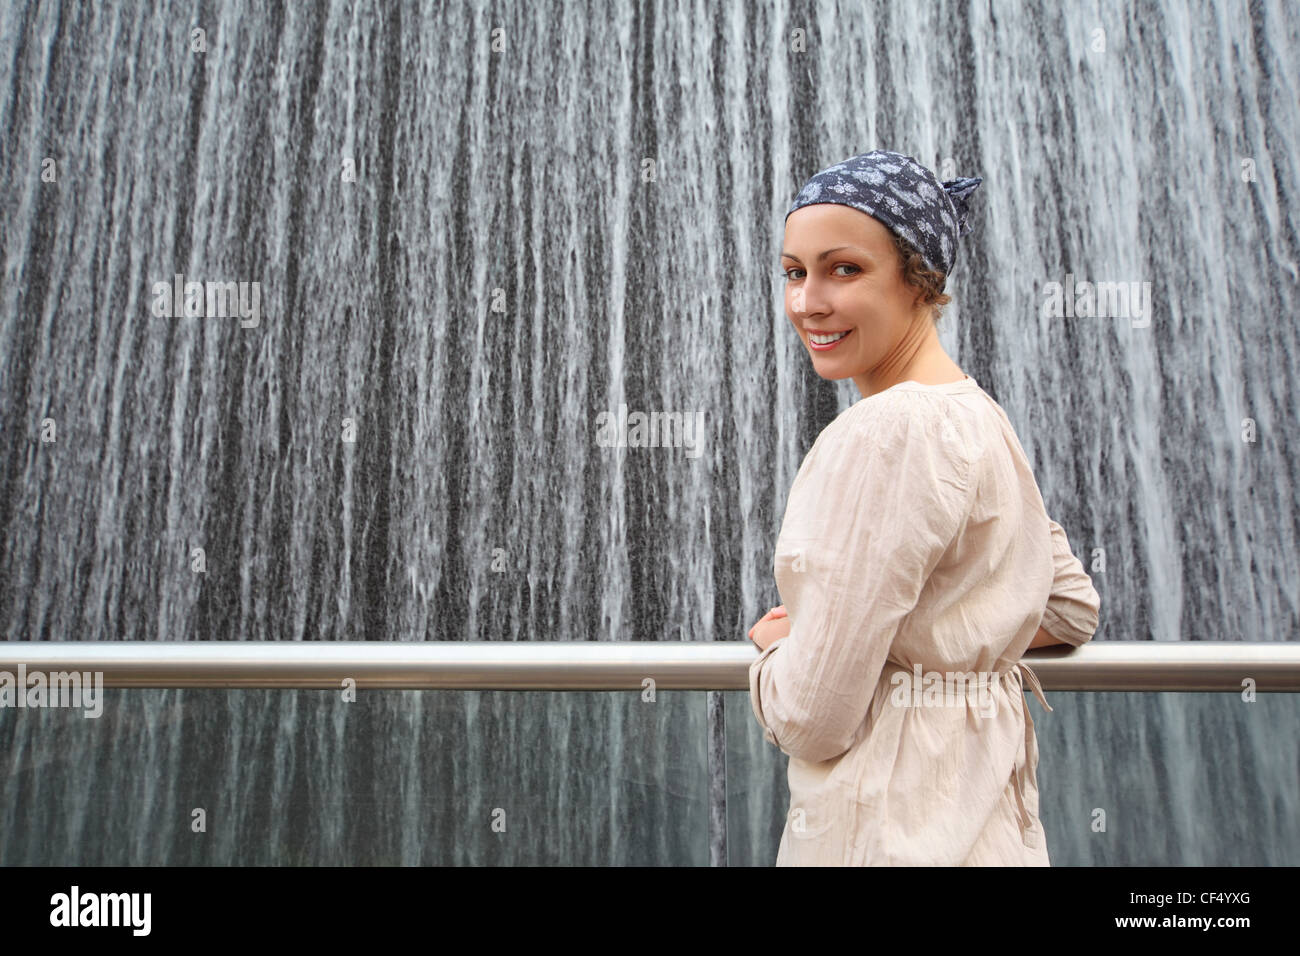 young beauty woman in white shirt standing near big fountain and looking back, half body - Stock Image